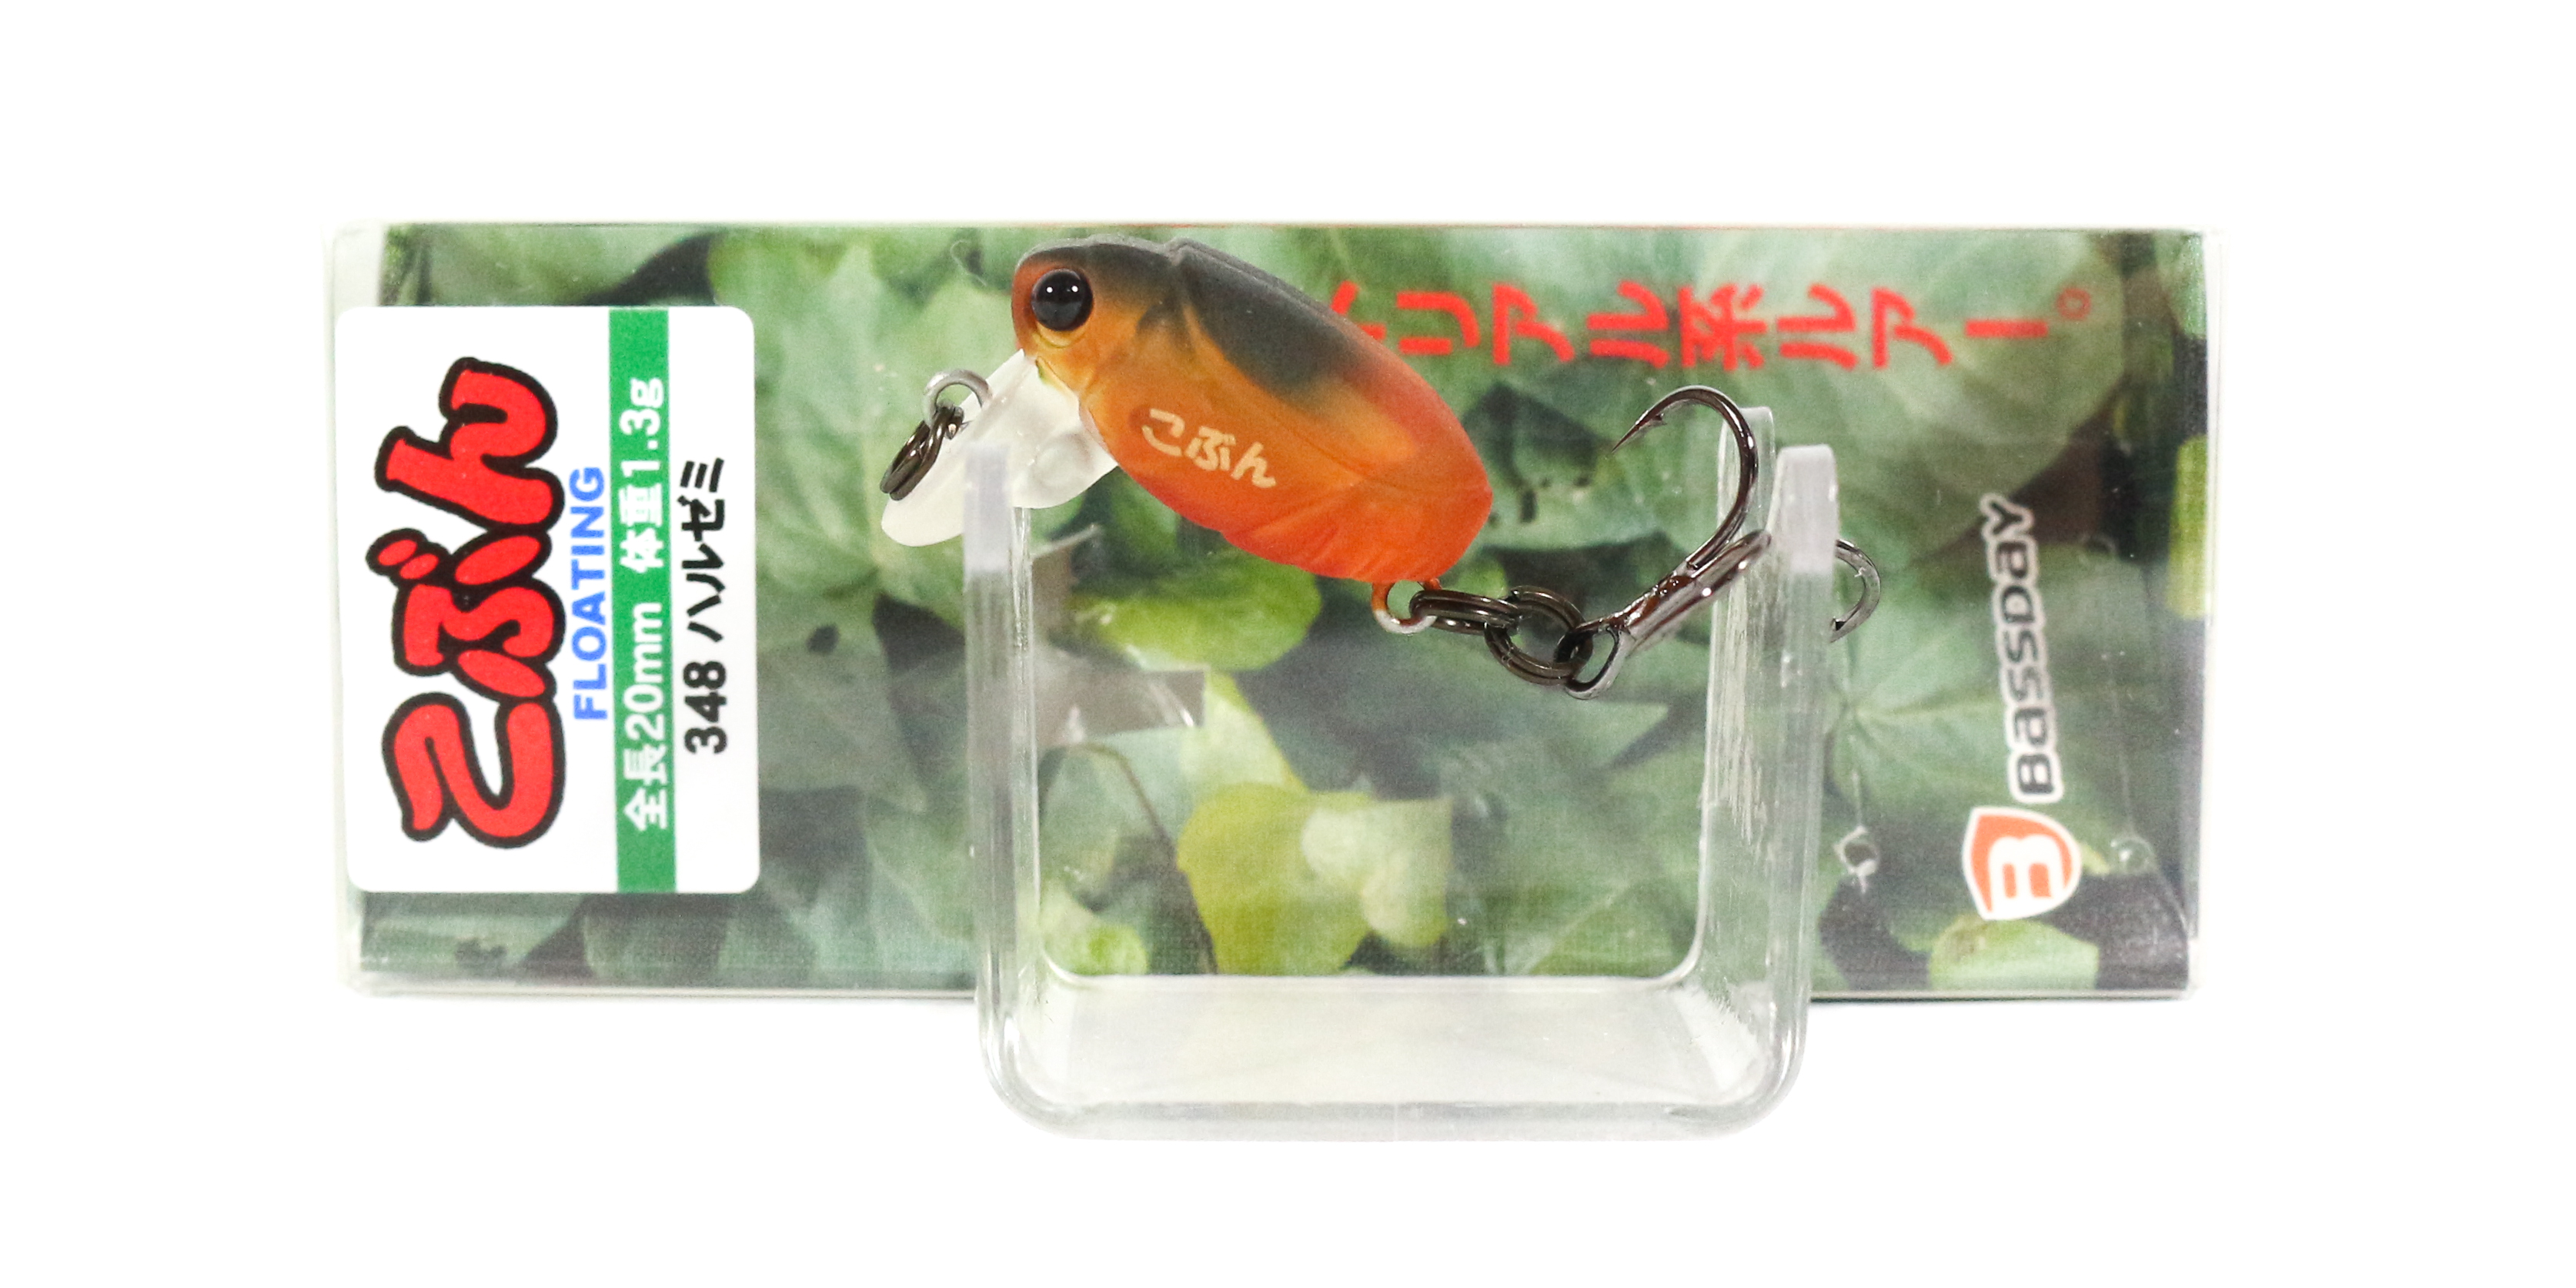 Bassday Beetle Kobun Floating Lure 1.3 grams 348 (4284)